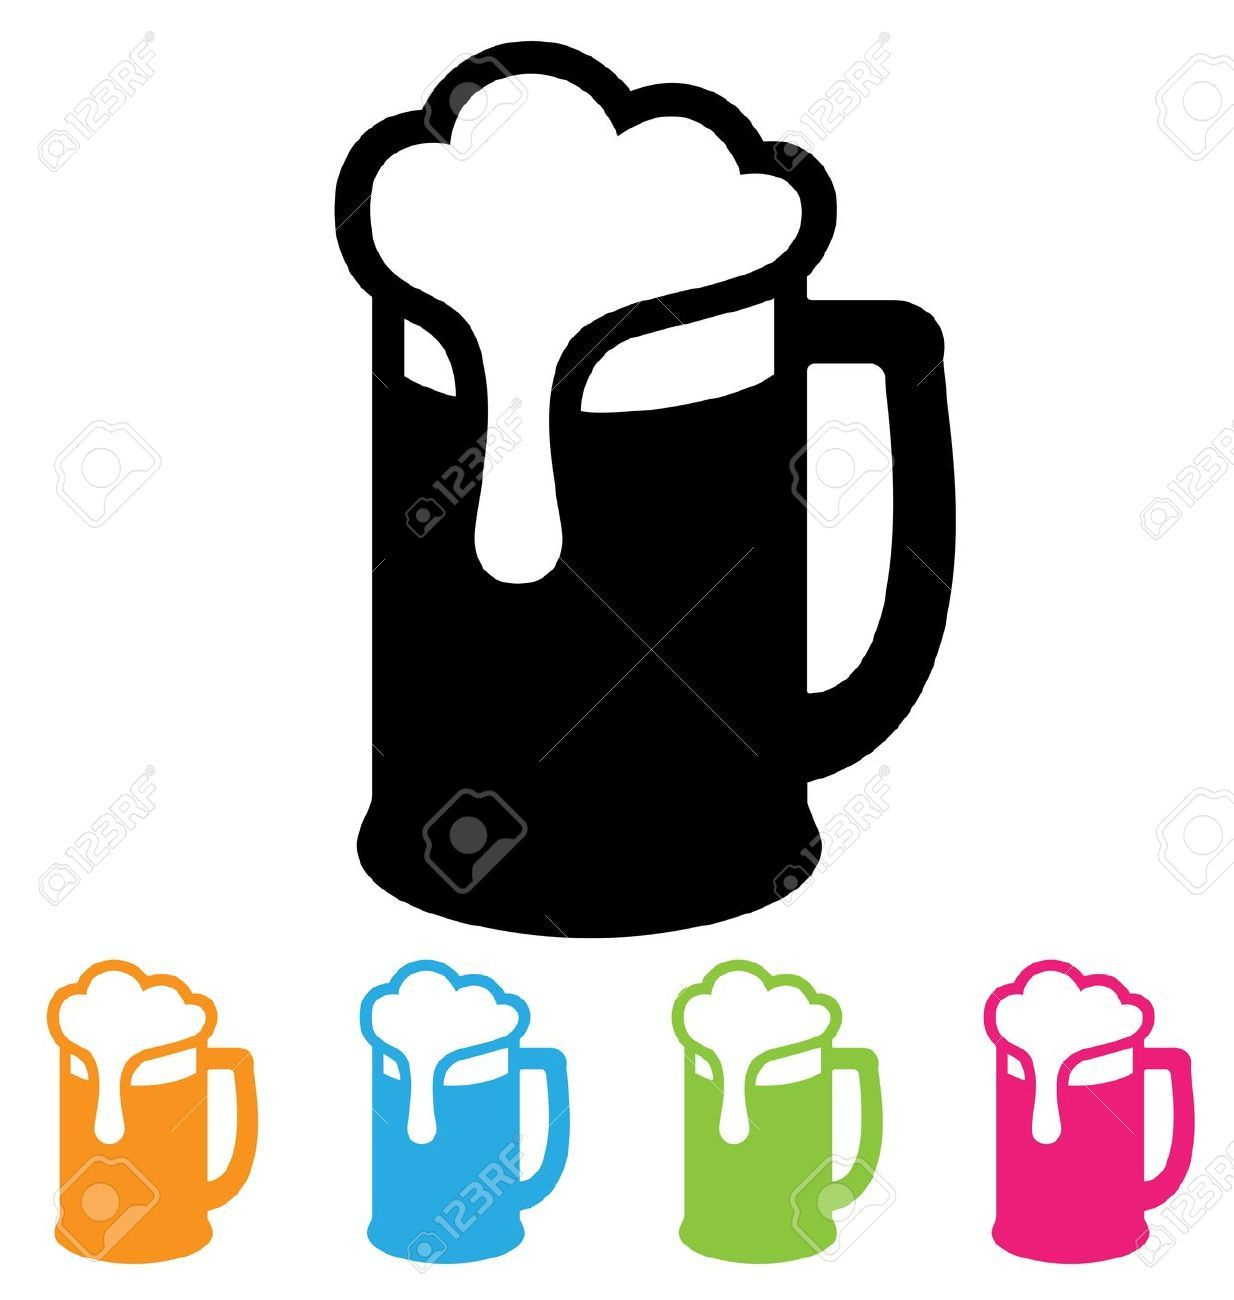 Beer Mug Cliparts, Stock Vector And Royalty Free Beer Mug.